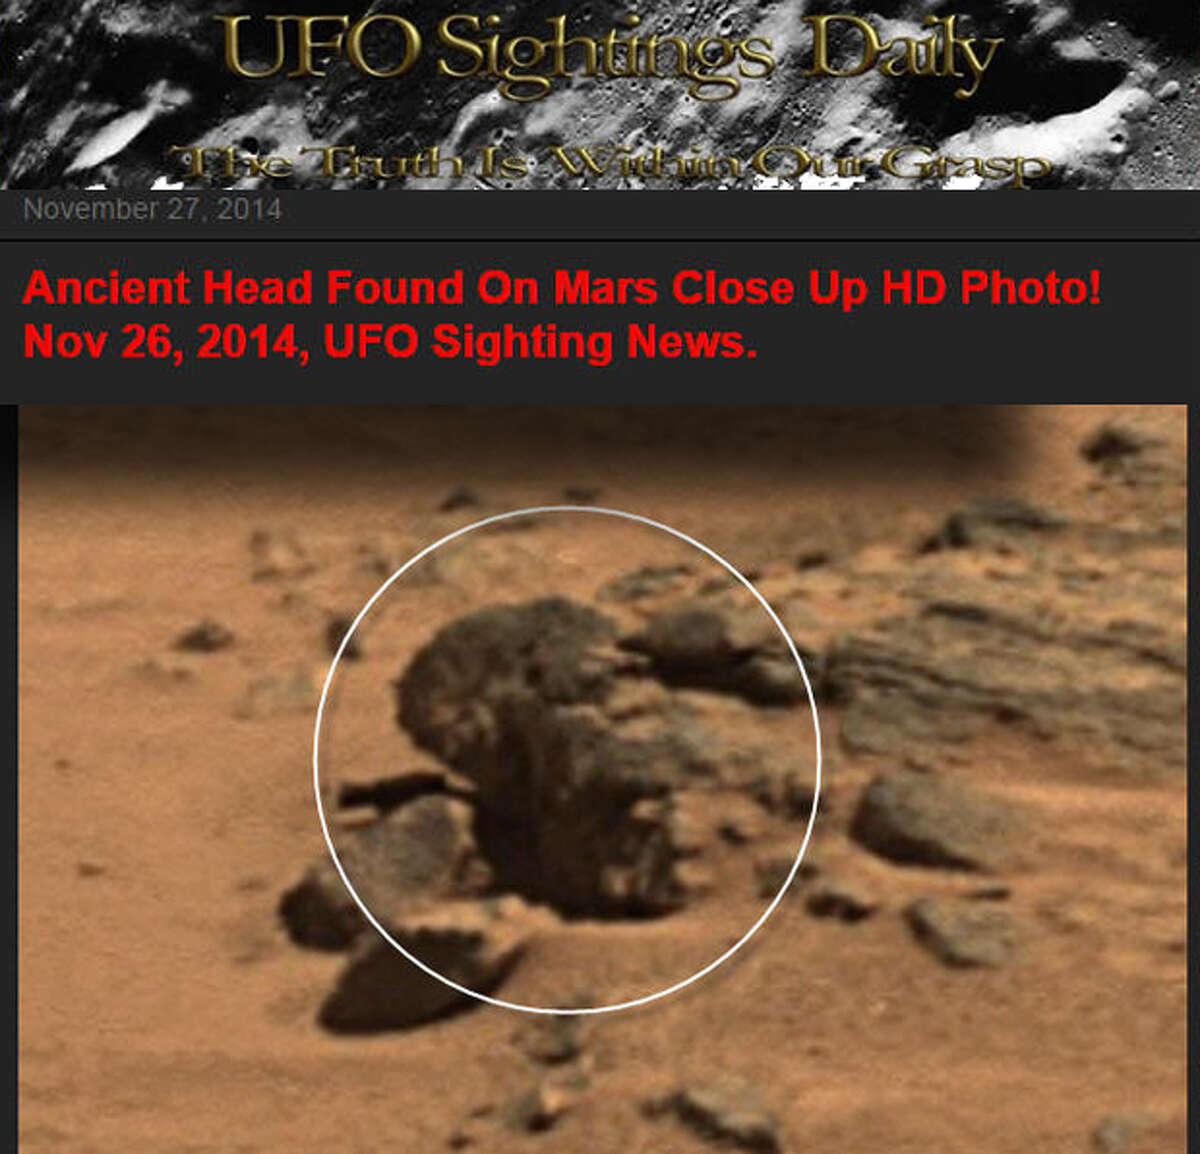 UFO Sightings Daily says it has spotted a statue of President Barack Obama on Mars in a composite image taken from NASA rover cameras. We think it's a rock. What's your take?PHOTOS: More weird things spotted on the surface of Mars